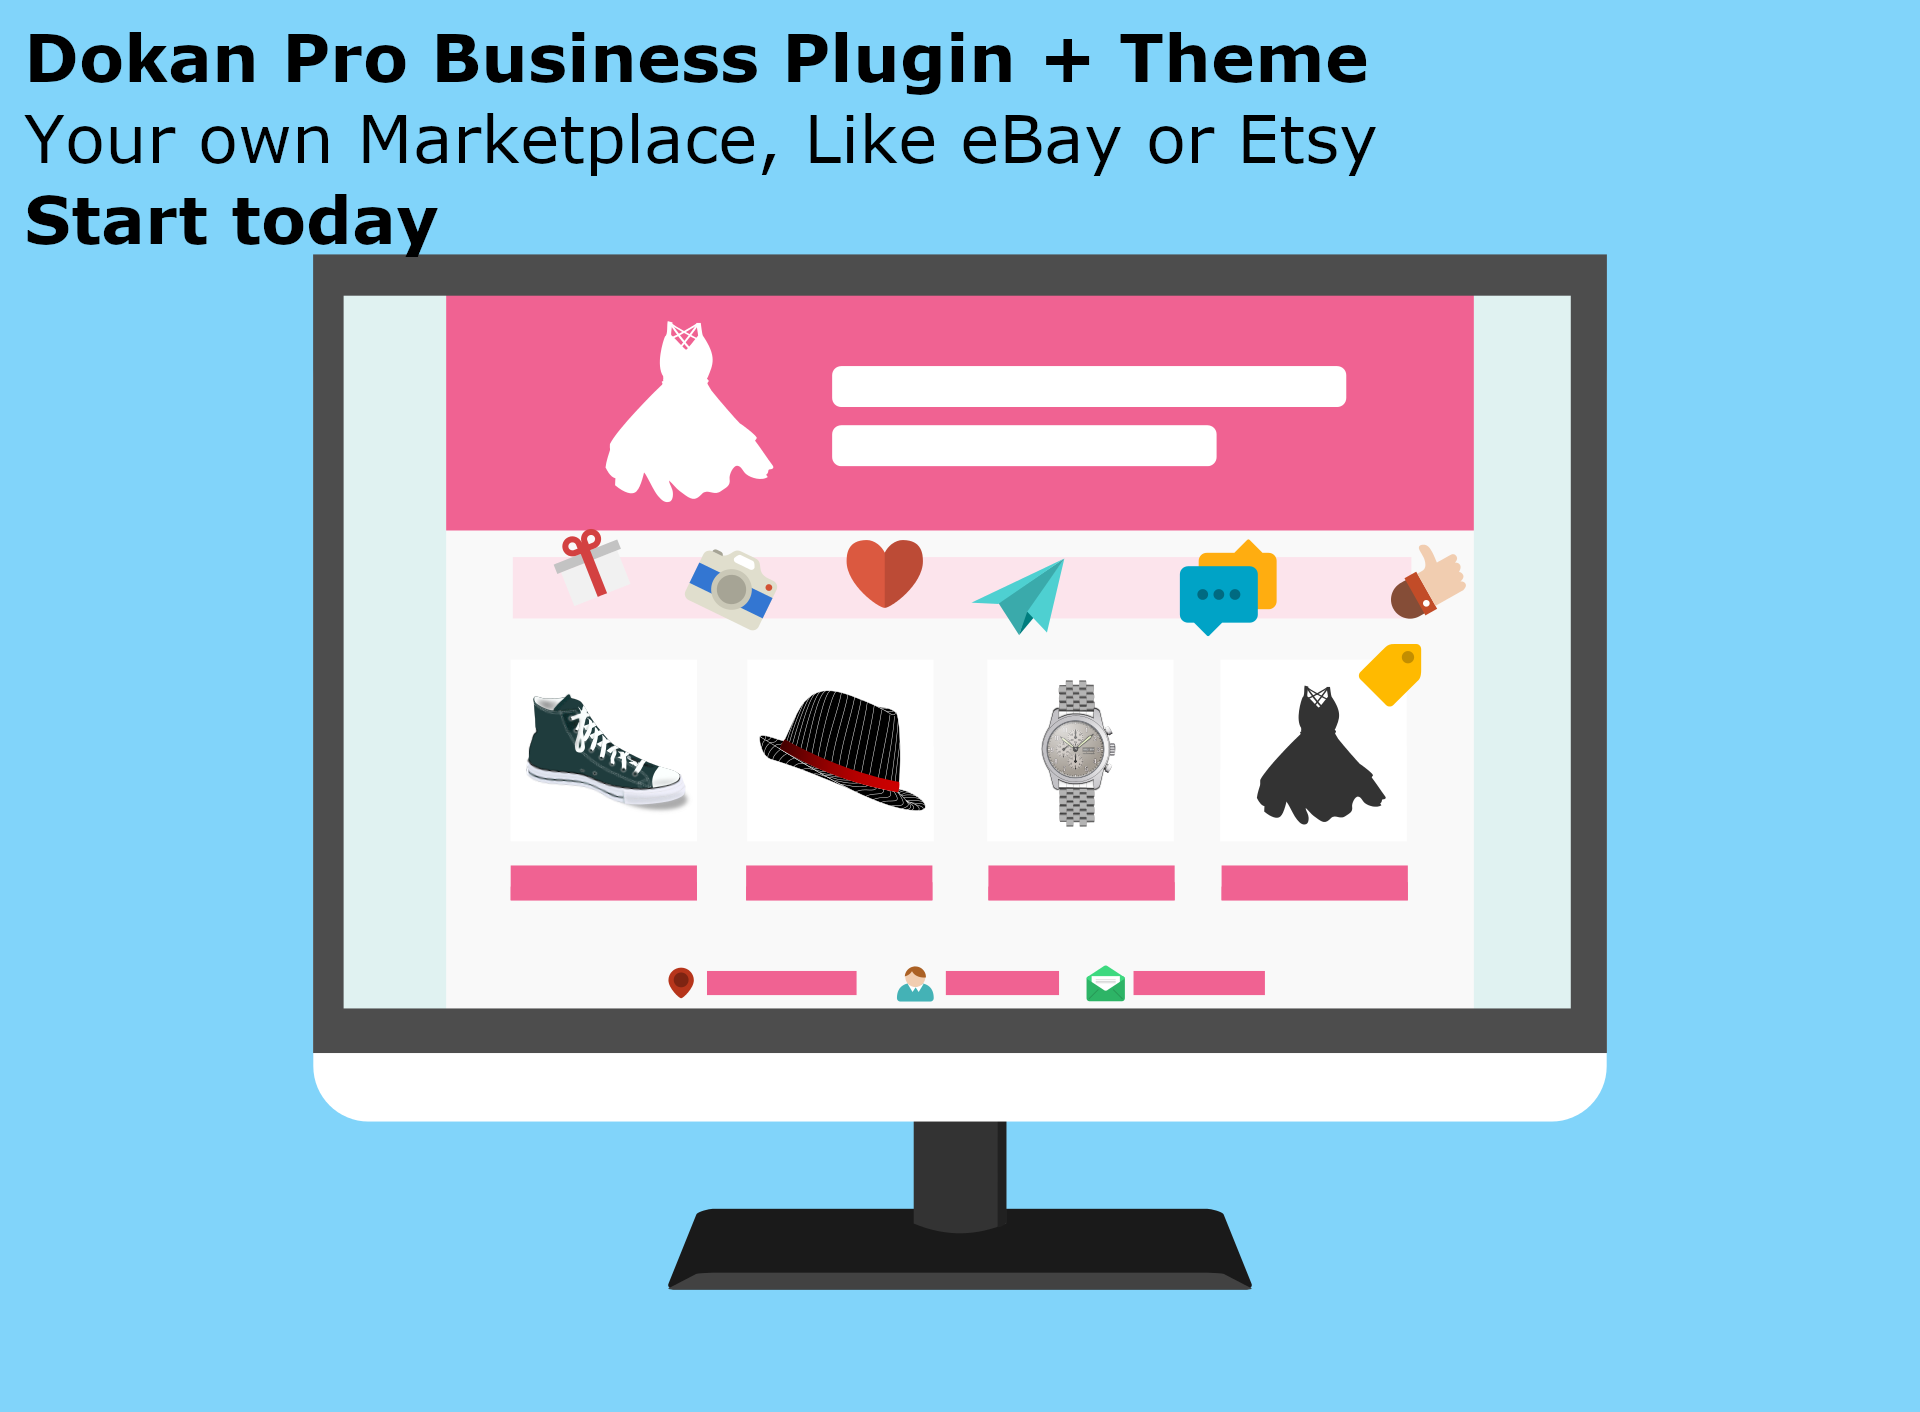 I Will install premium Dokan Pro Business marketplace plugin in 2 days